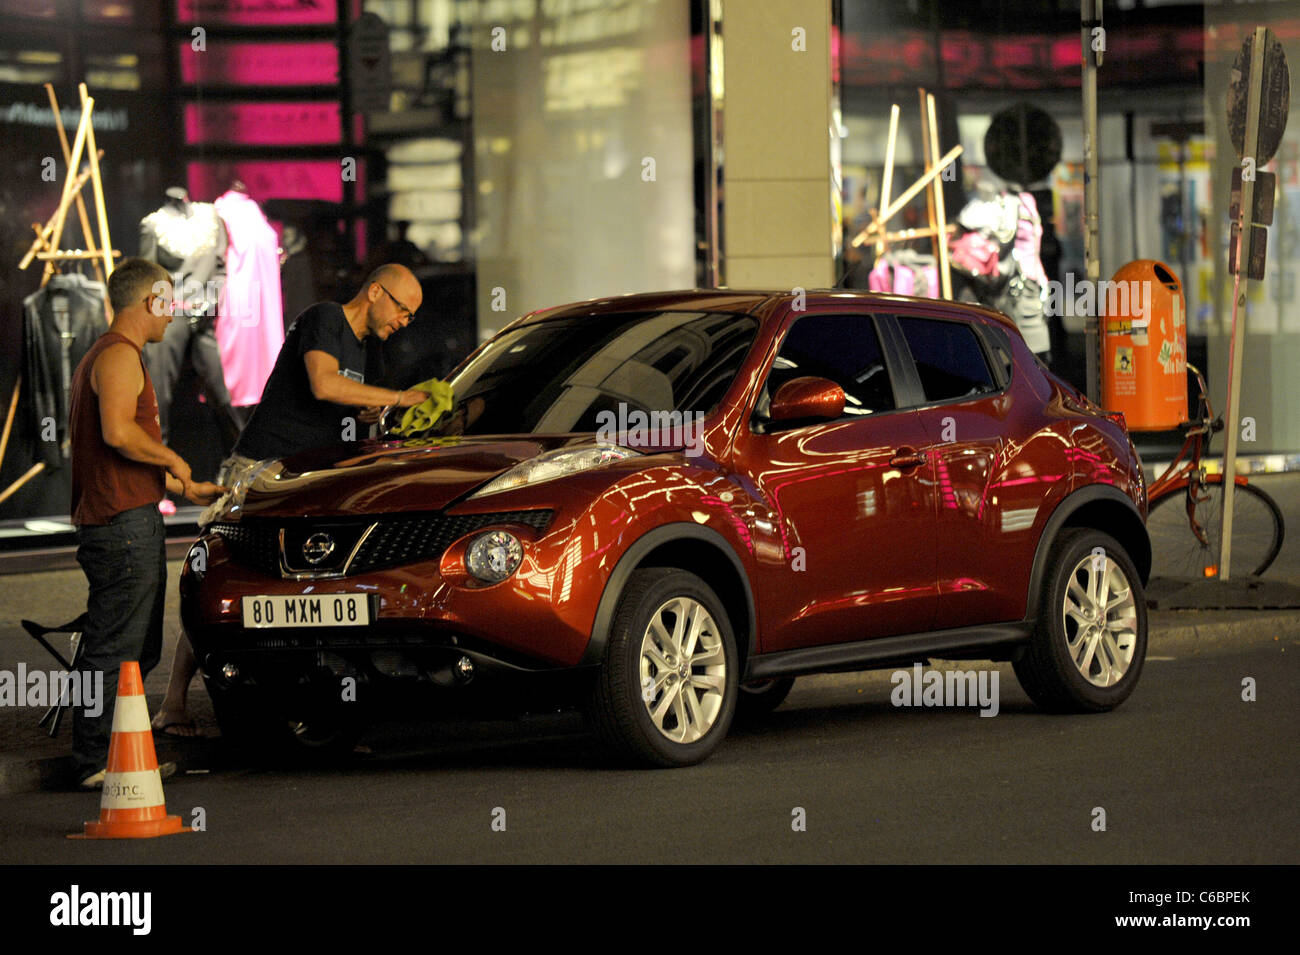 Atmosphere On The Set Of A Car Commercial For The New Nissan Juke At  Friedrichstrasse Street. The Mini SUV Carries A Foreign